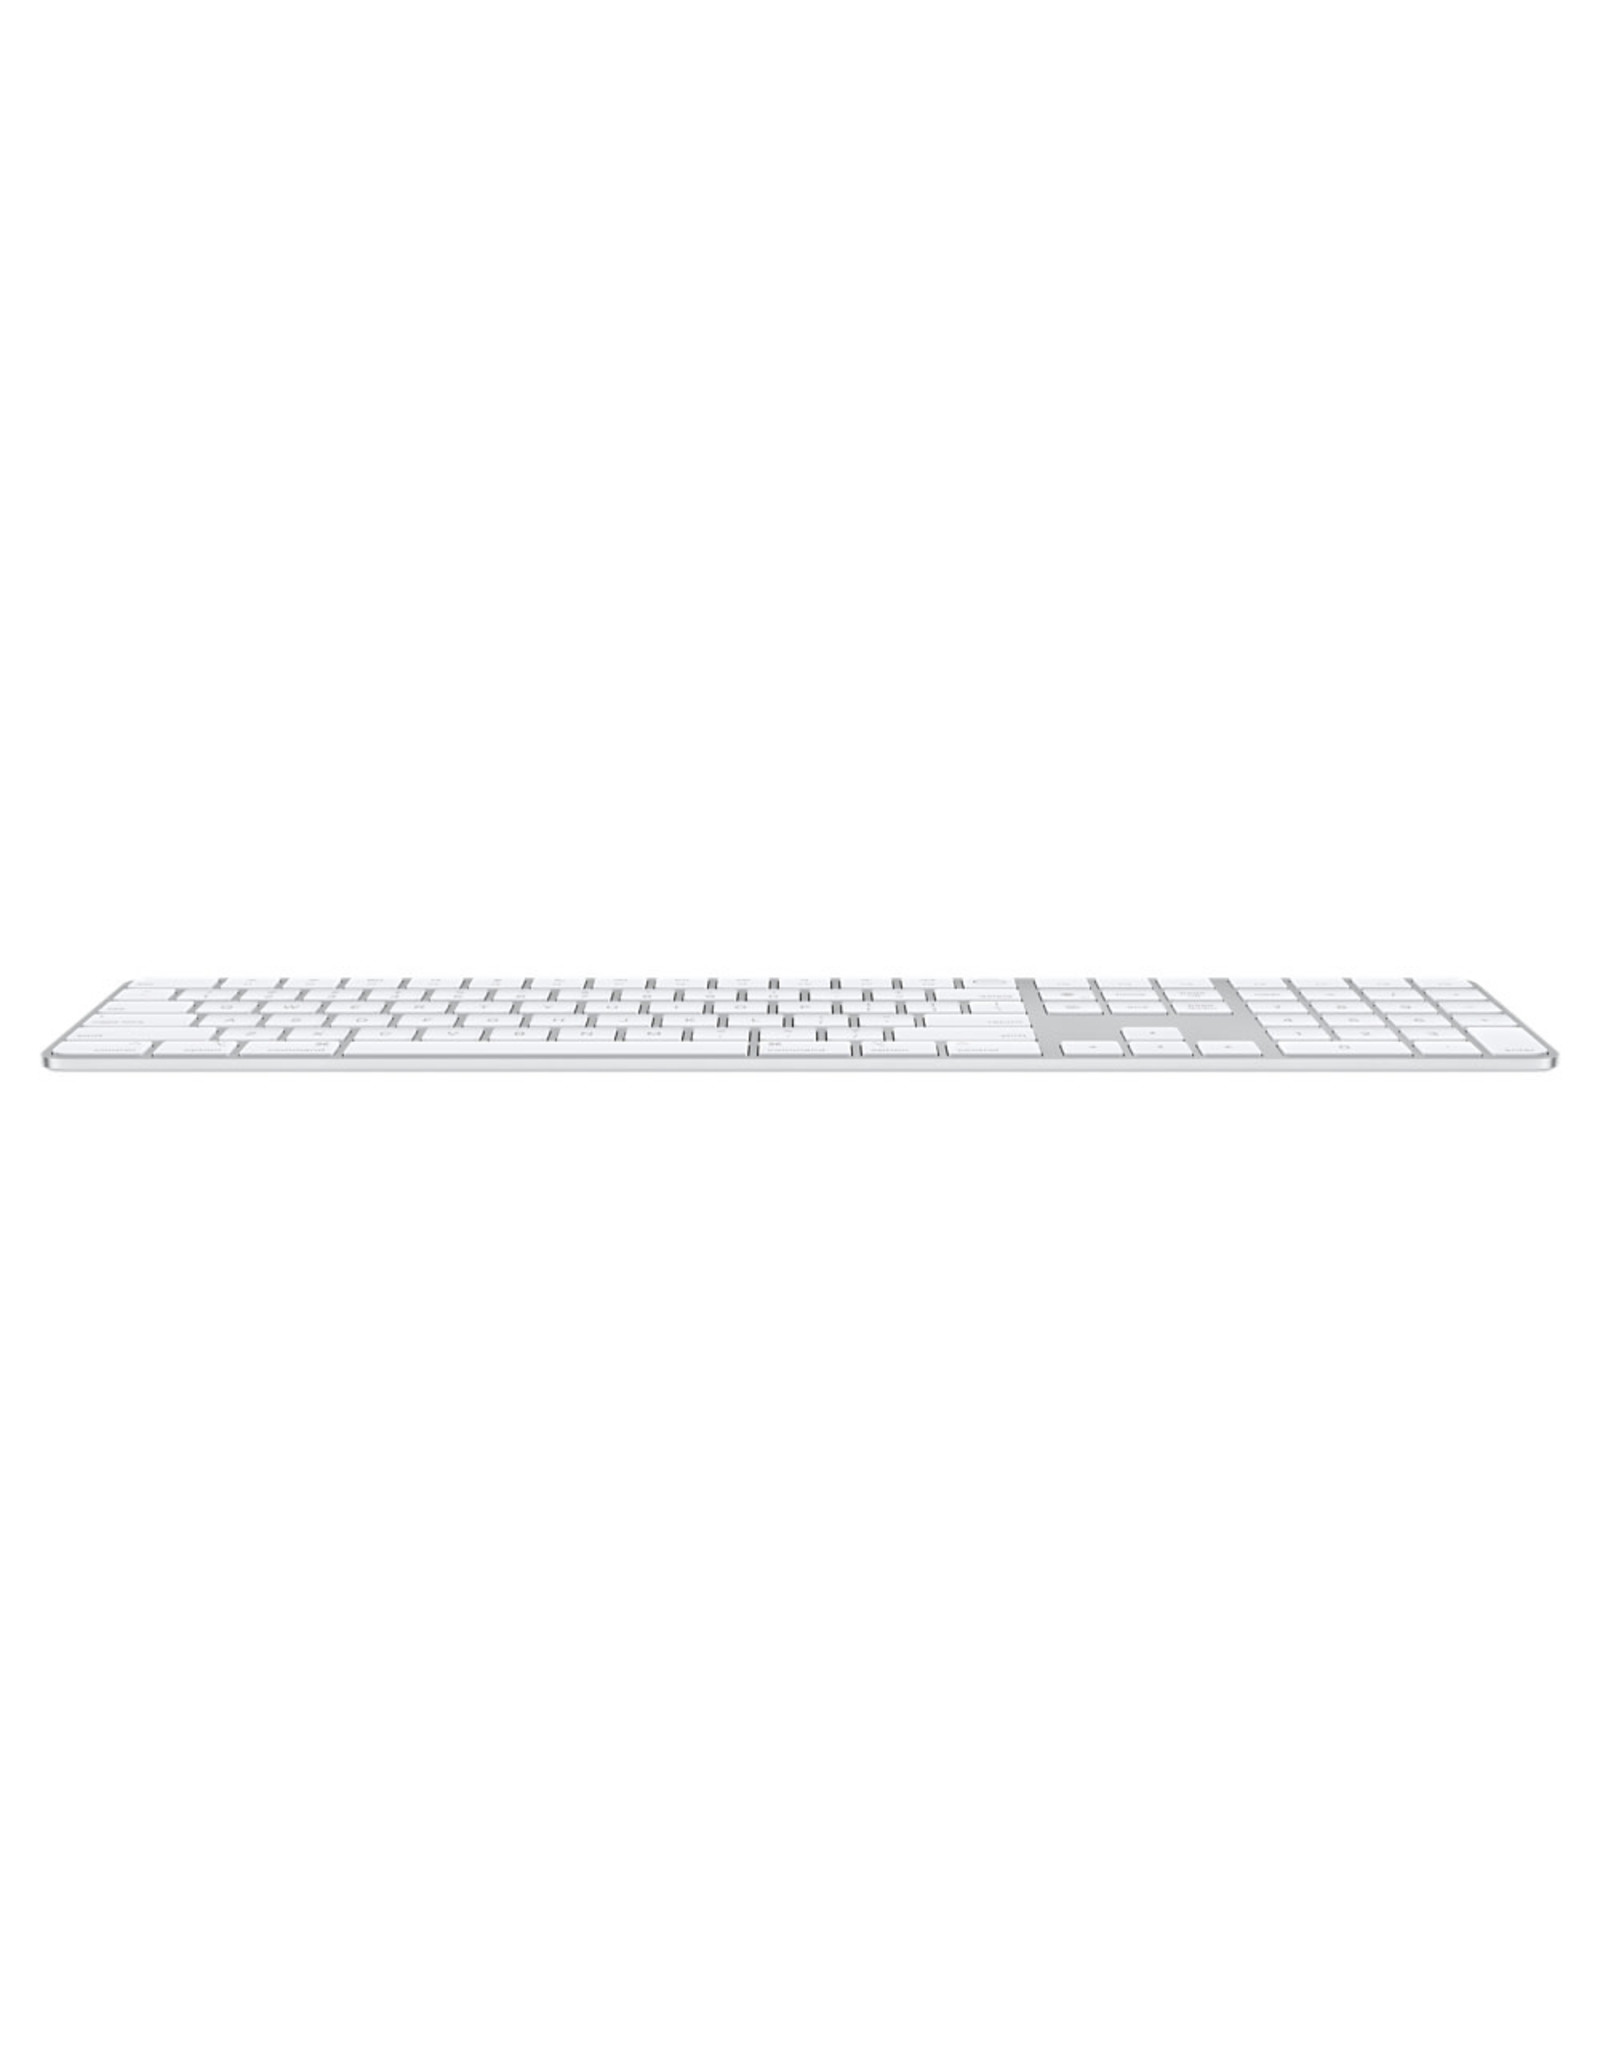 Apple Apple Magic Keyboard with Touch ID and Numeric Keypad for Mac models with Apple silicon — US English